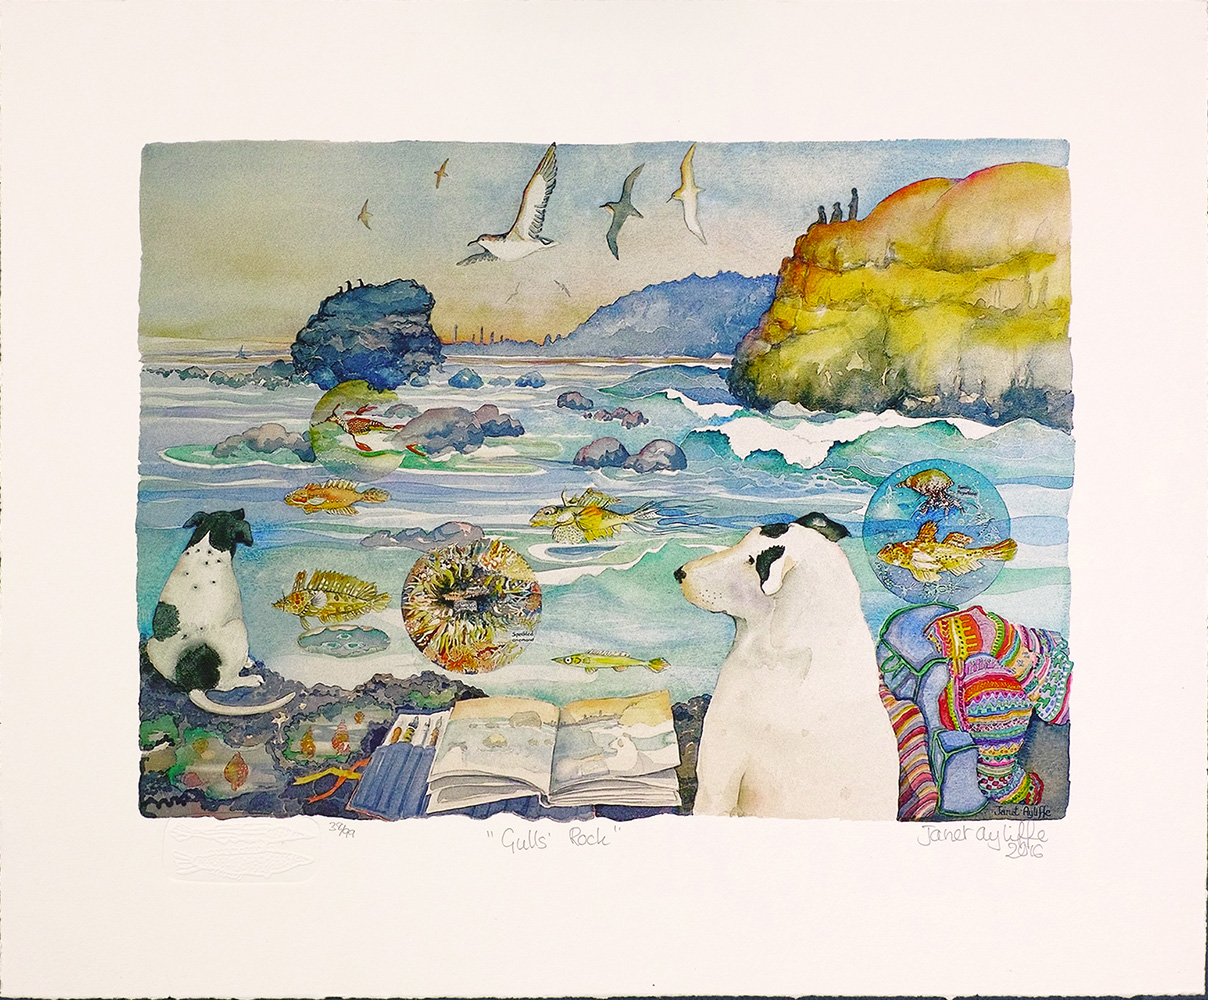 Gulls Rock reproduction printed in the artist's studio with hand embossed inclusion